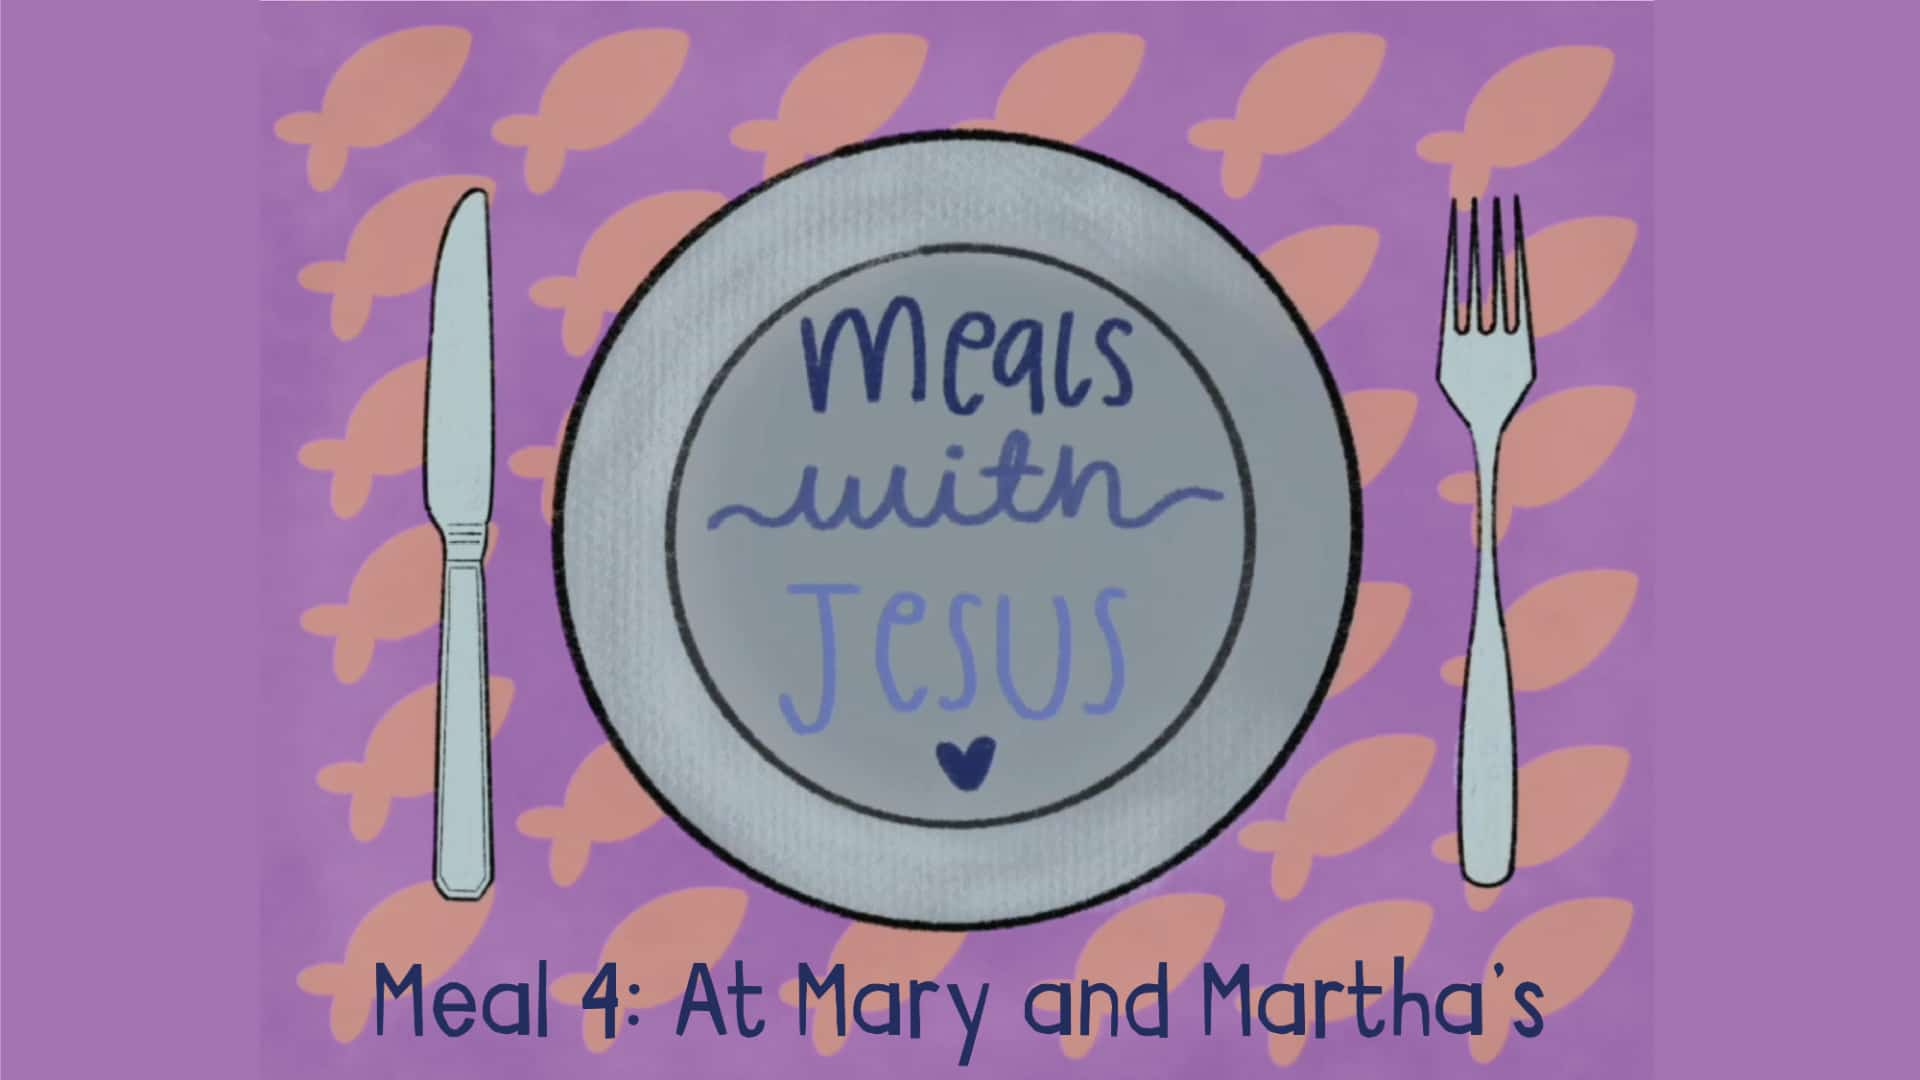 Meals with Jesus: At Mary and Martha's